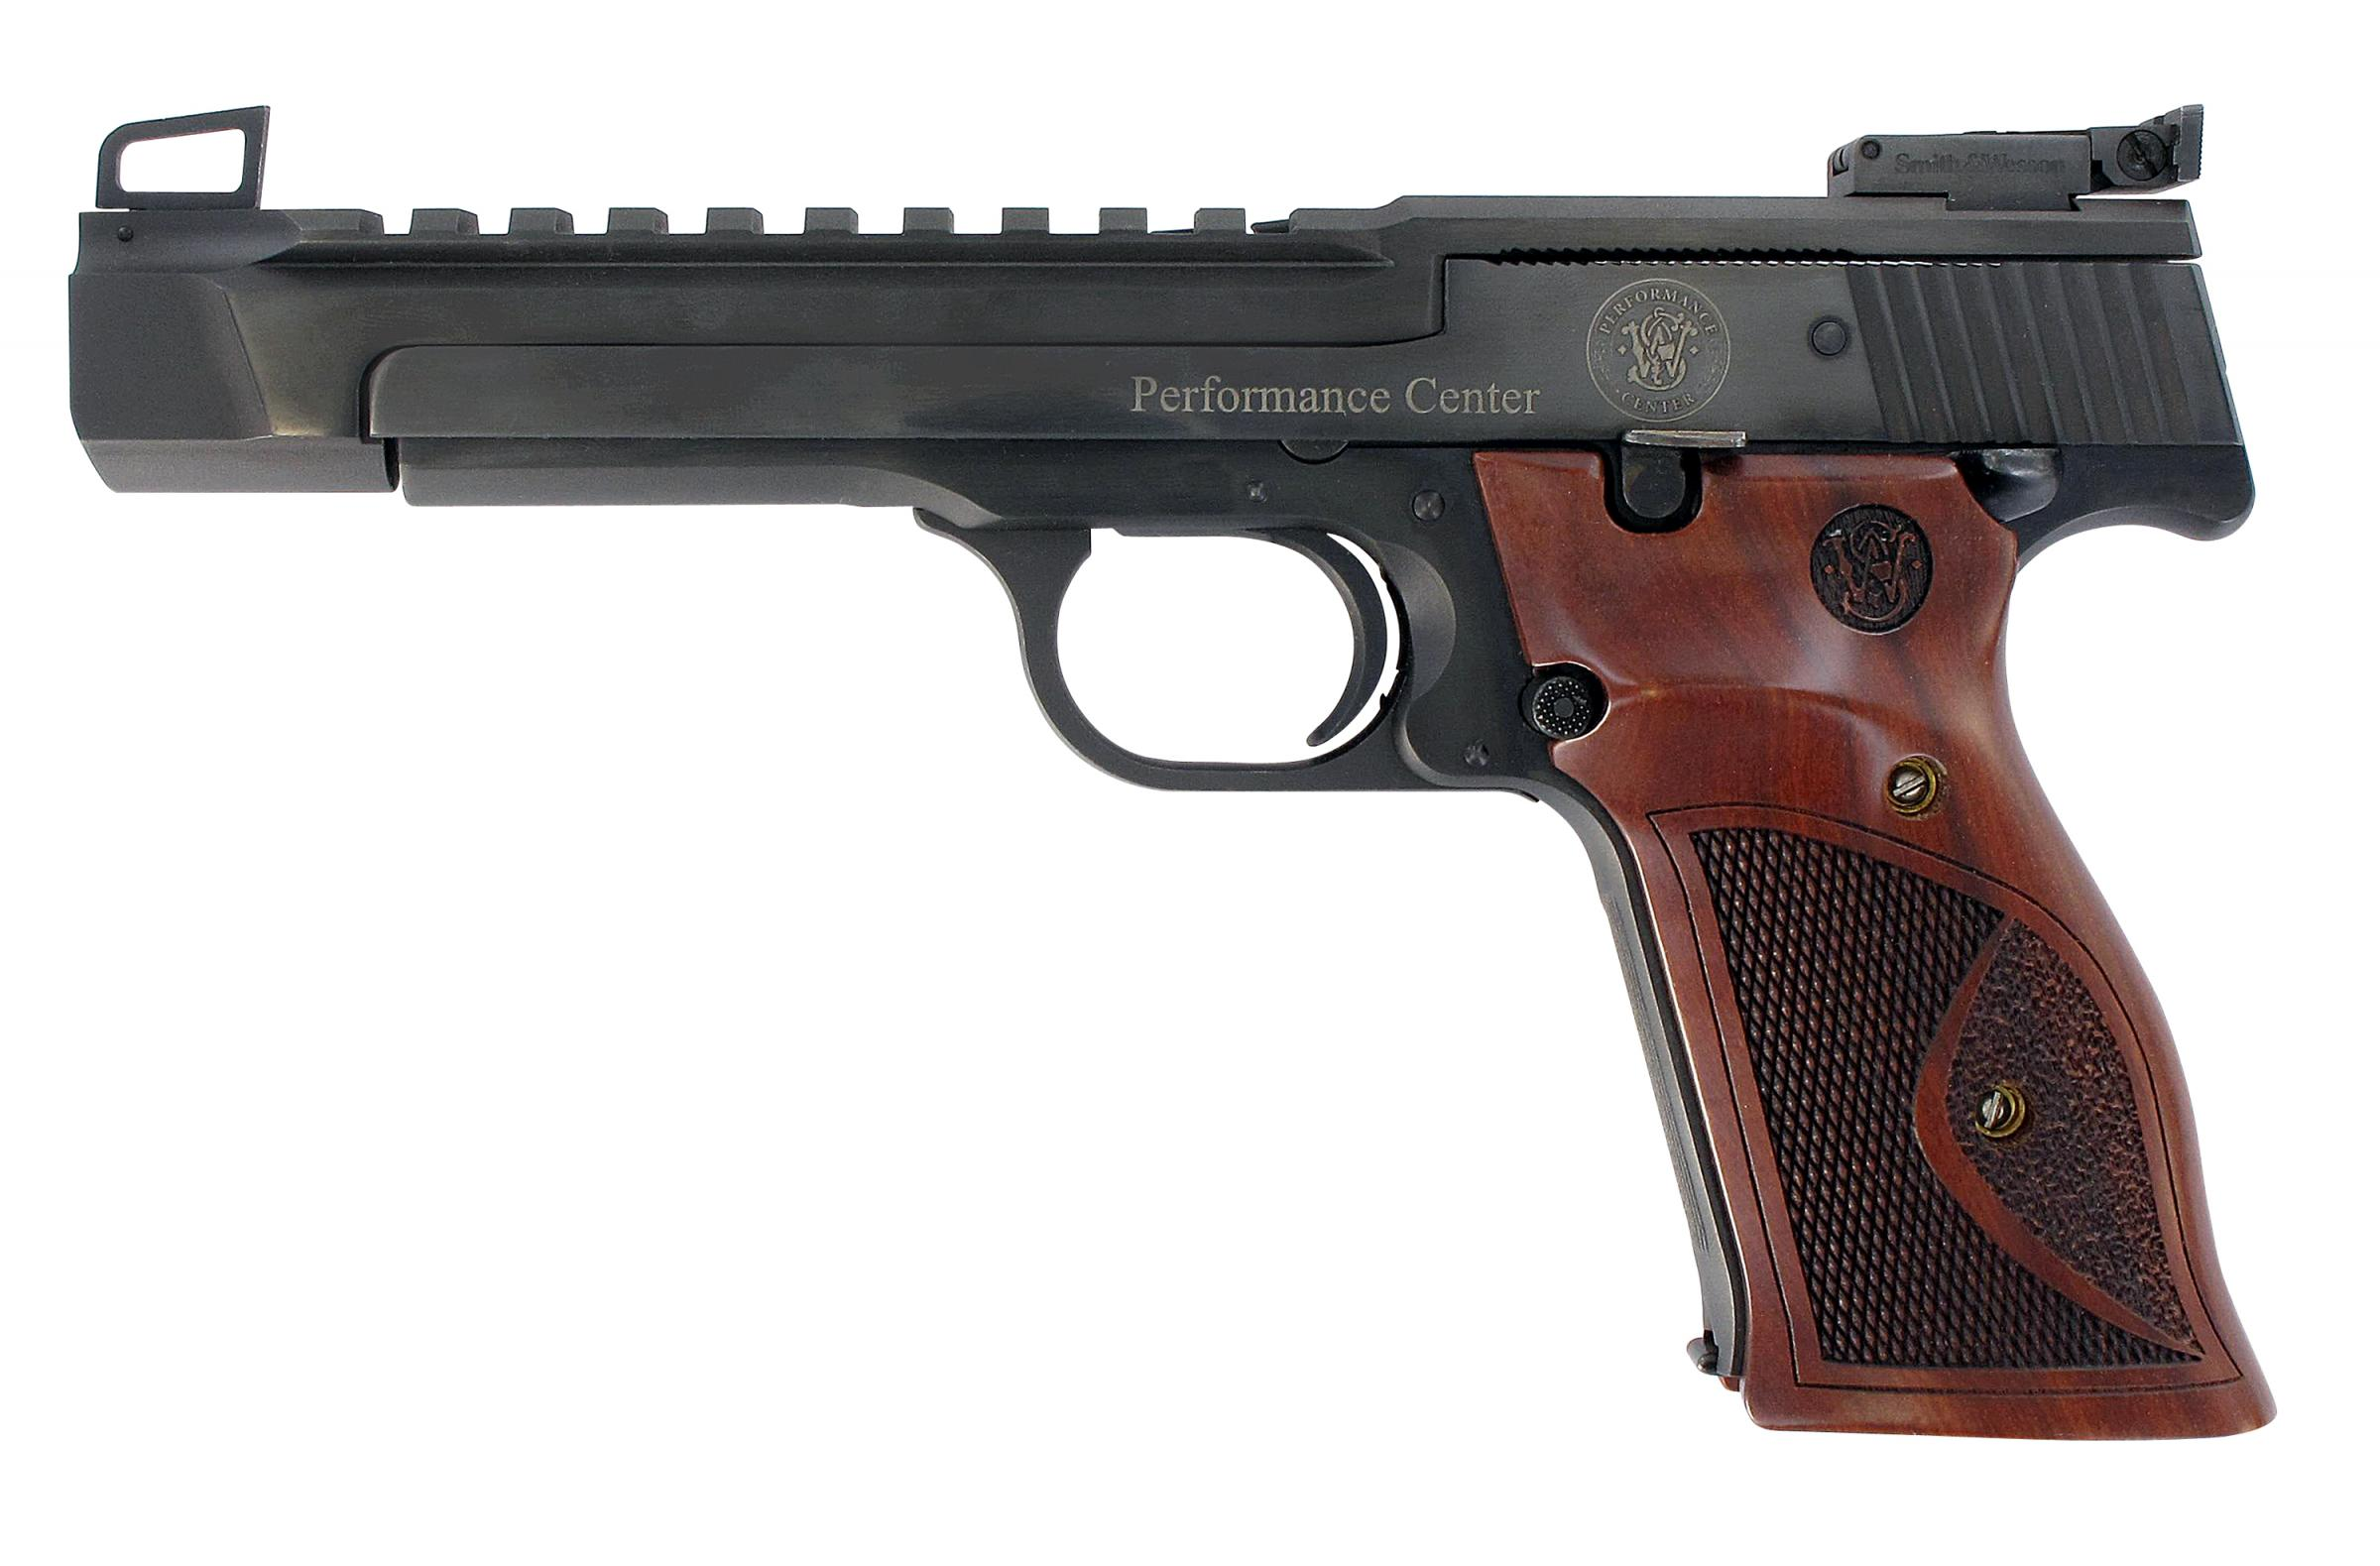 Smith and Wesson 41 22 LR